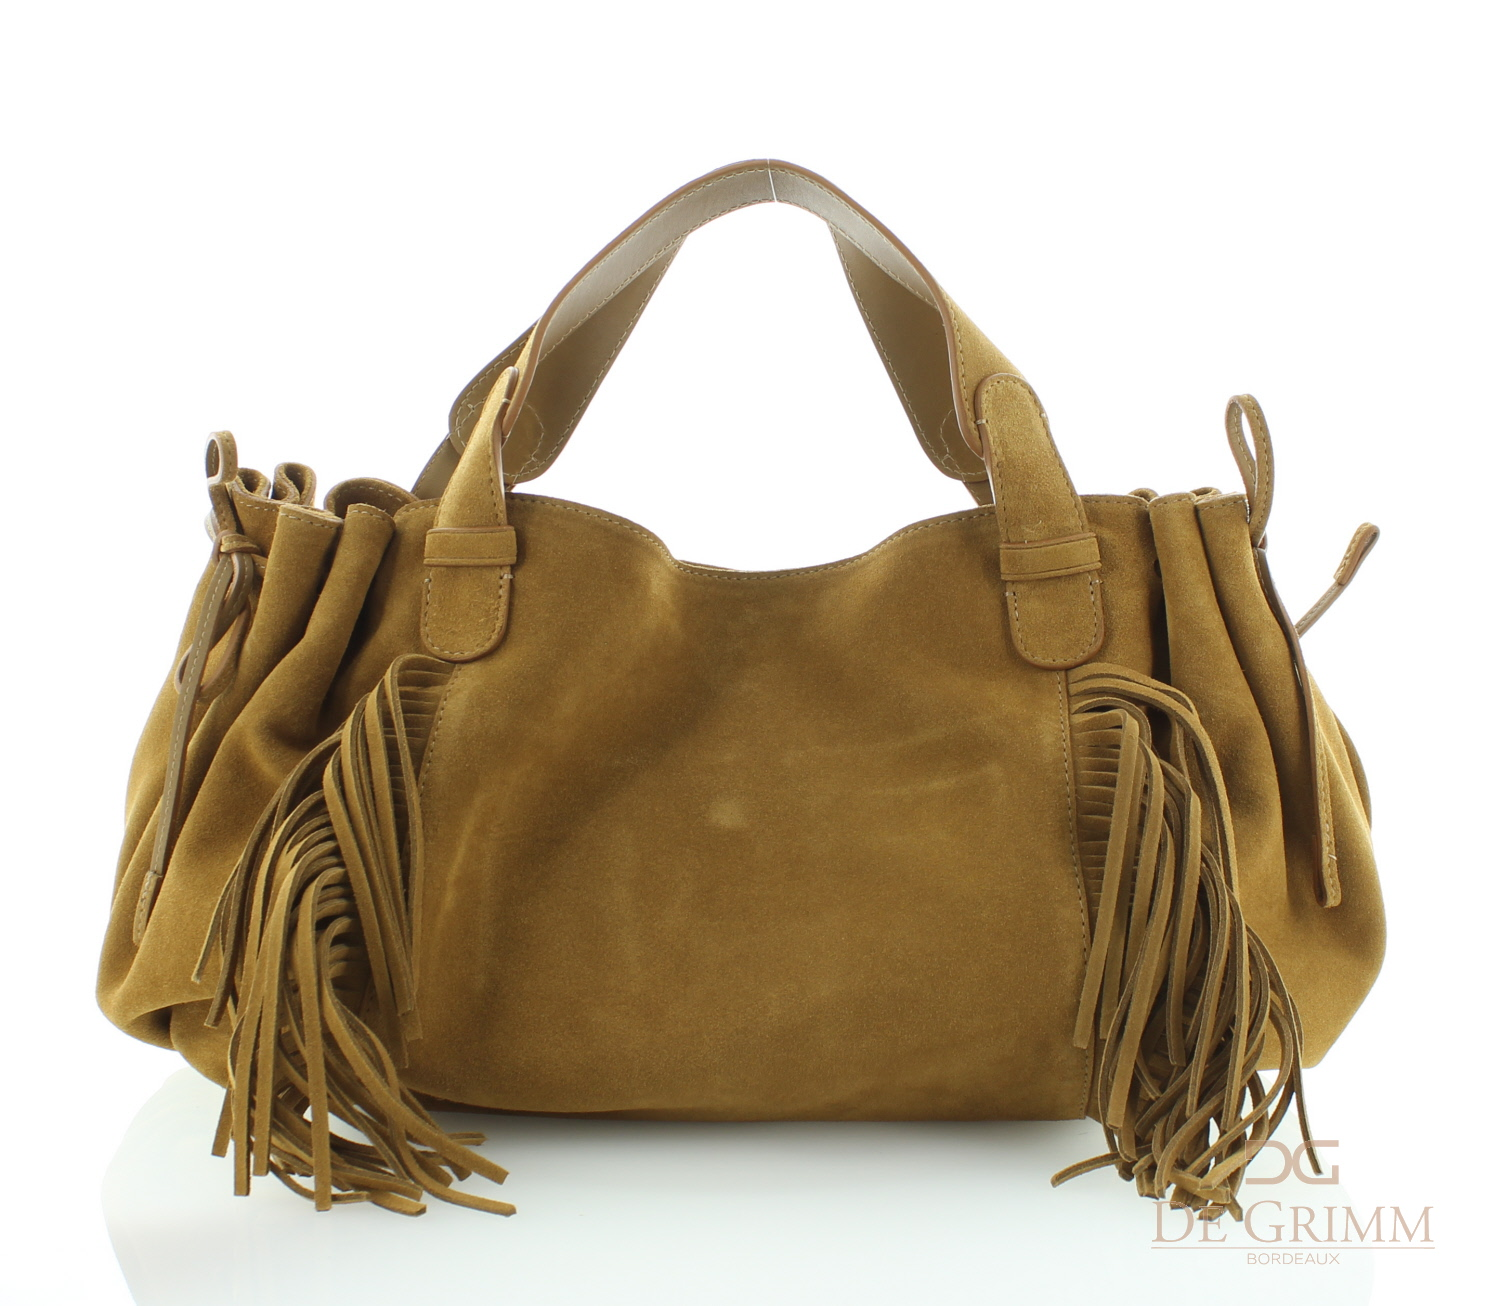 24 GD Bag in Caramel Leather Gerard Darel Sale Eastbay Fast Delivery Cheap Online tNGqsTFeI